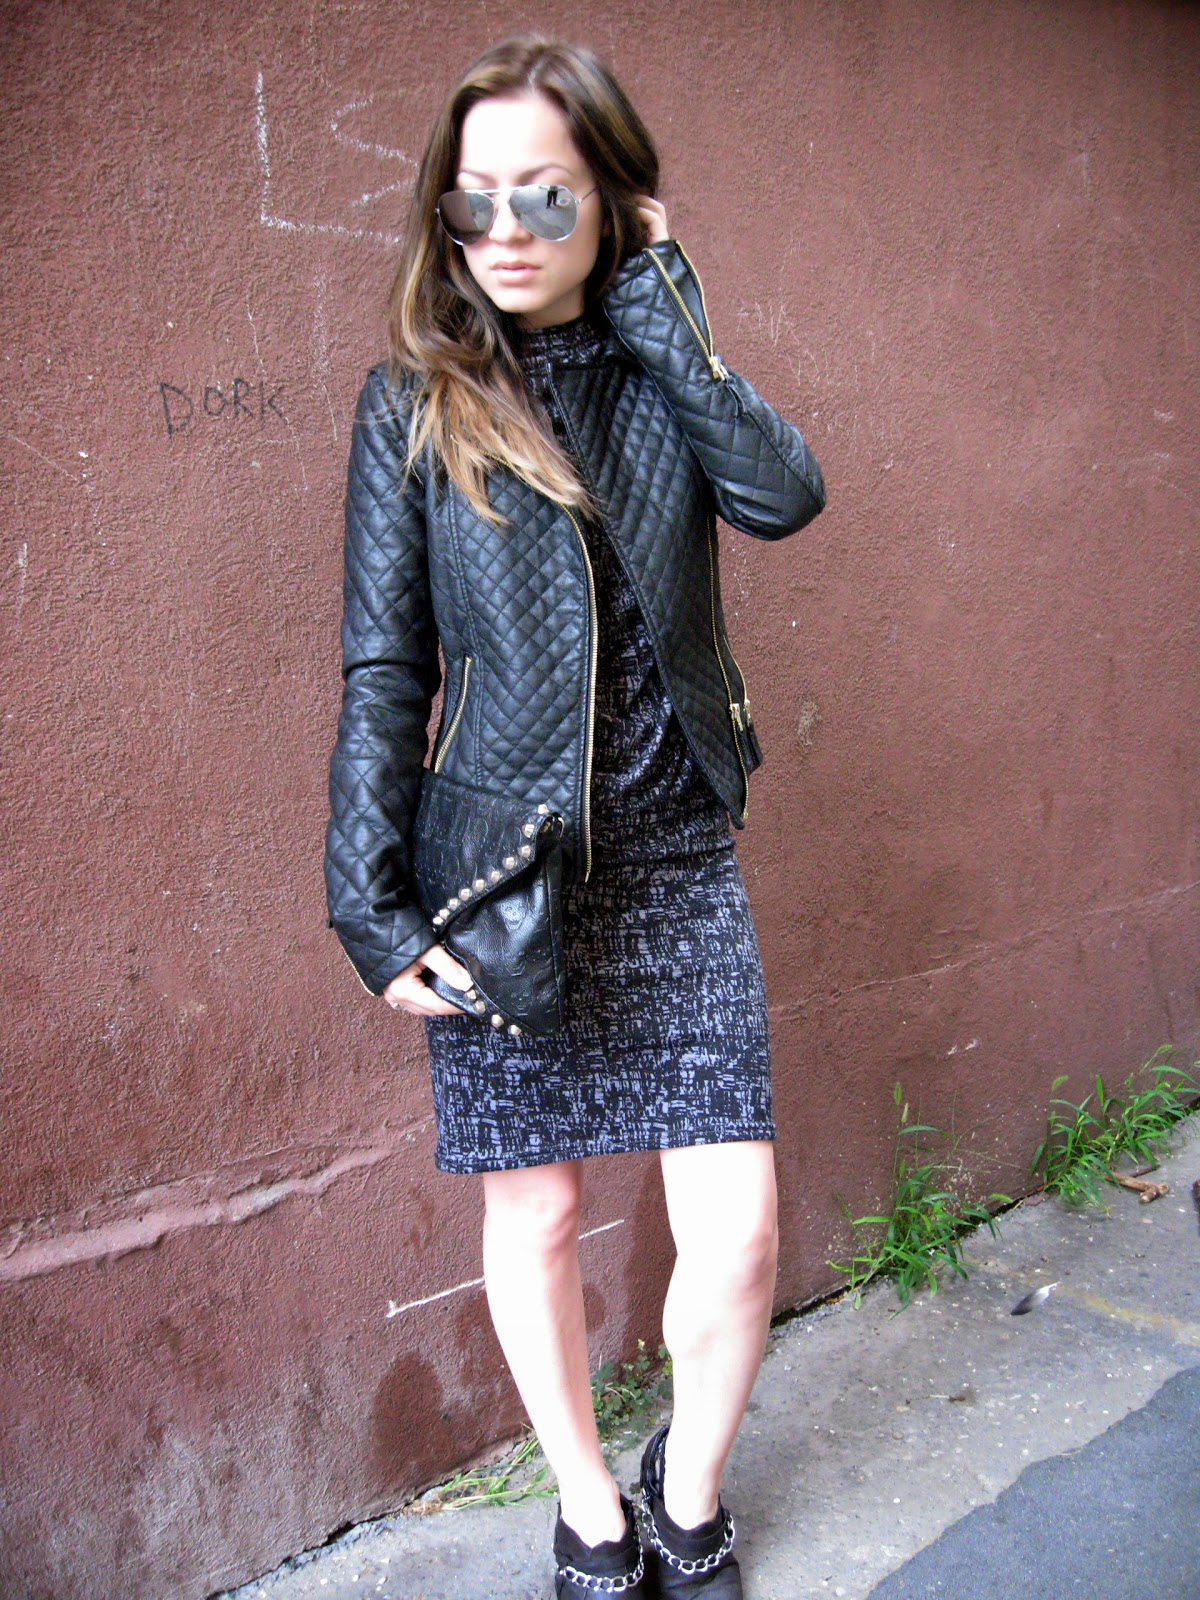 LBD, little black dress, backless black dress, black faux leather jacket, c&a black pu faux leather jacket, DIY chain cut boots, aviator sunglasses, black studded clutch